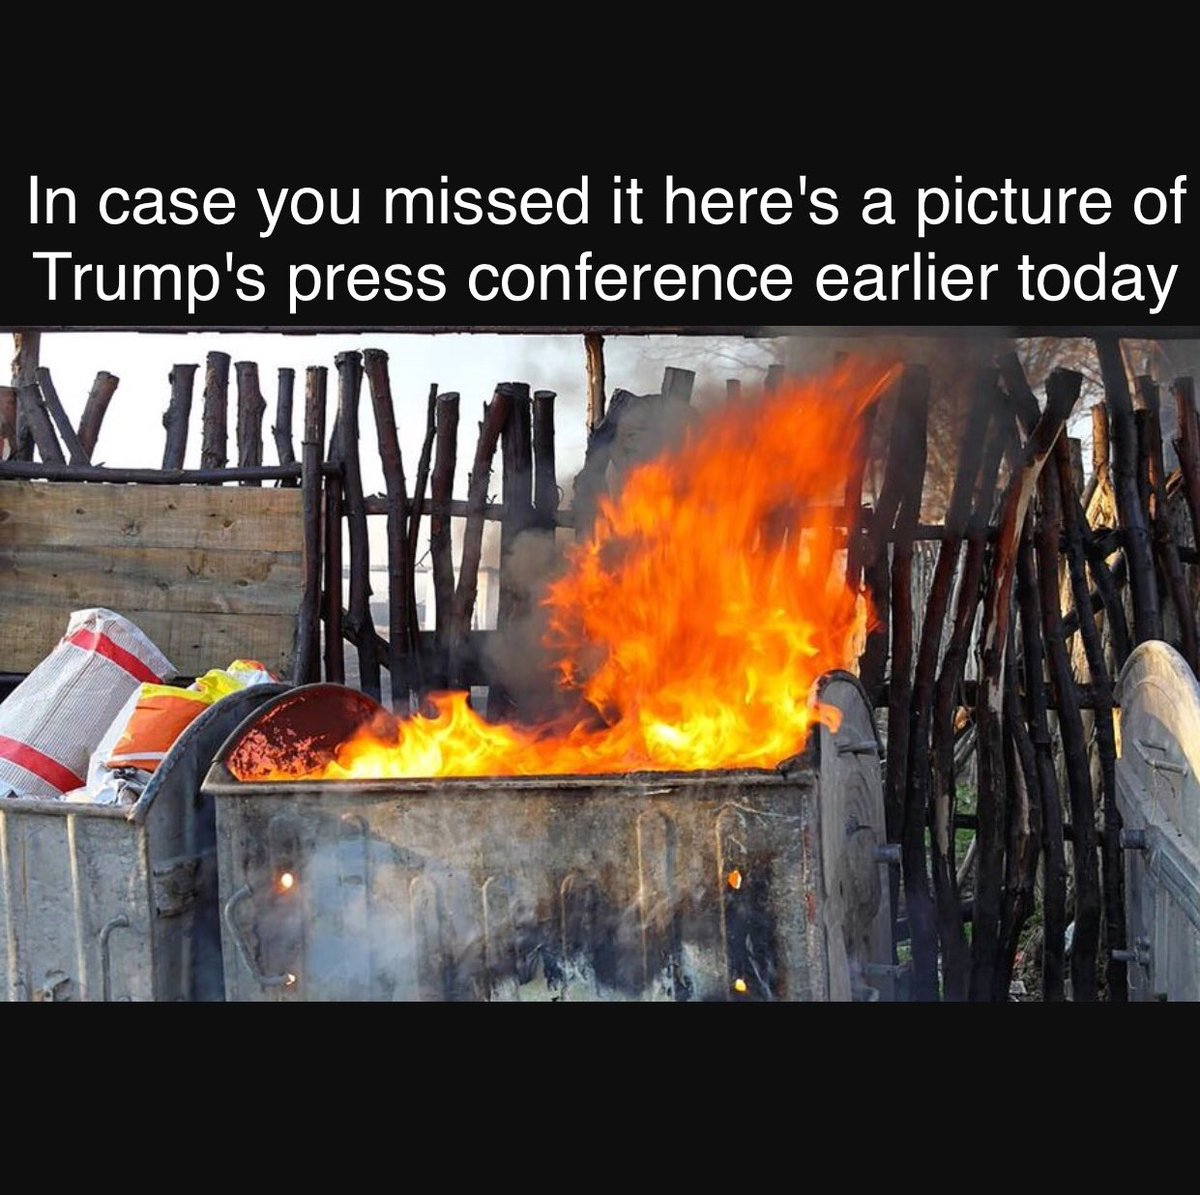 #TrumpPressConference was like a dumpster fire catching on fire if that's even possible